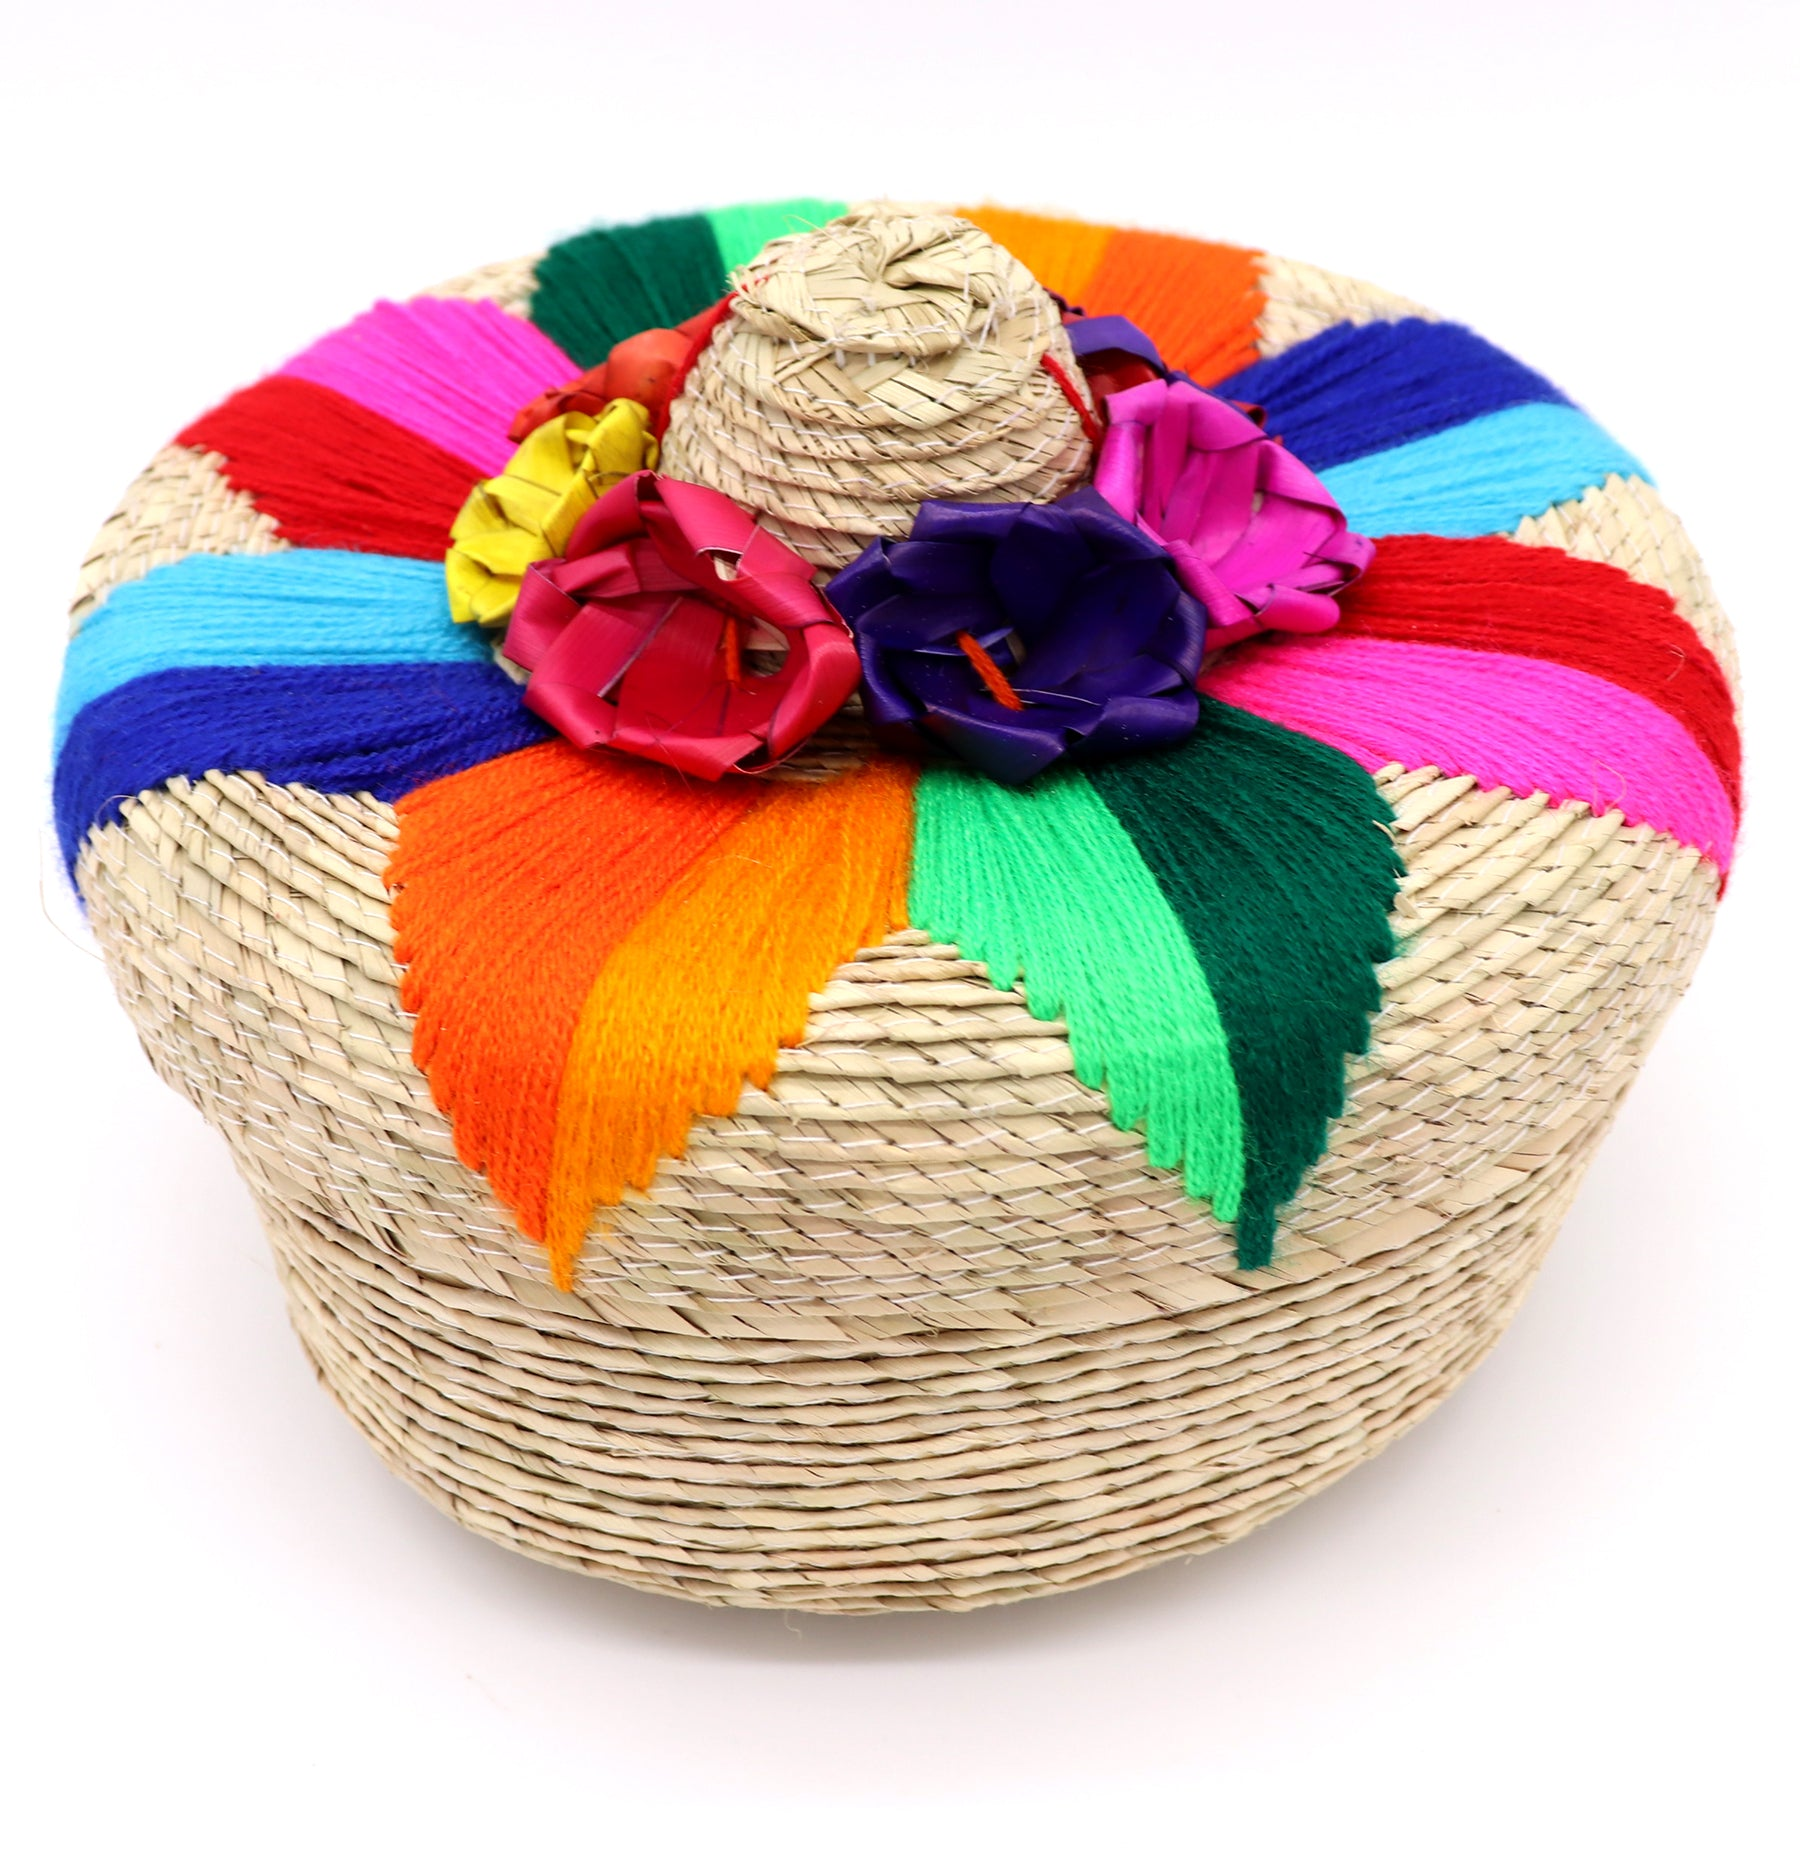 Handwoven basket for decoration or keeping your tortillas warm. Made with natural palm or corn husk materials. Handcrafted with yarn to make flower design on top. Made in Mexico. Basket is perfect for food such as warm corn tortillas or small crafts such as puzzles, bows, or any household items. Sold by SDTrading Co.